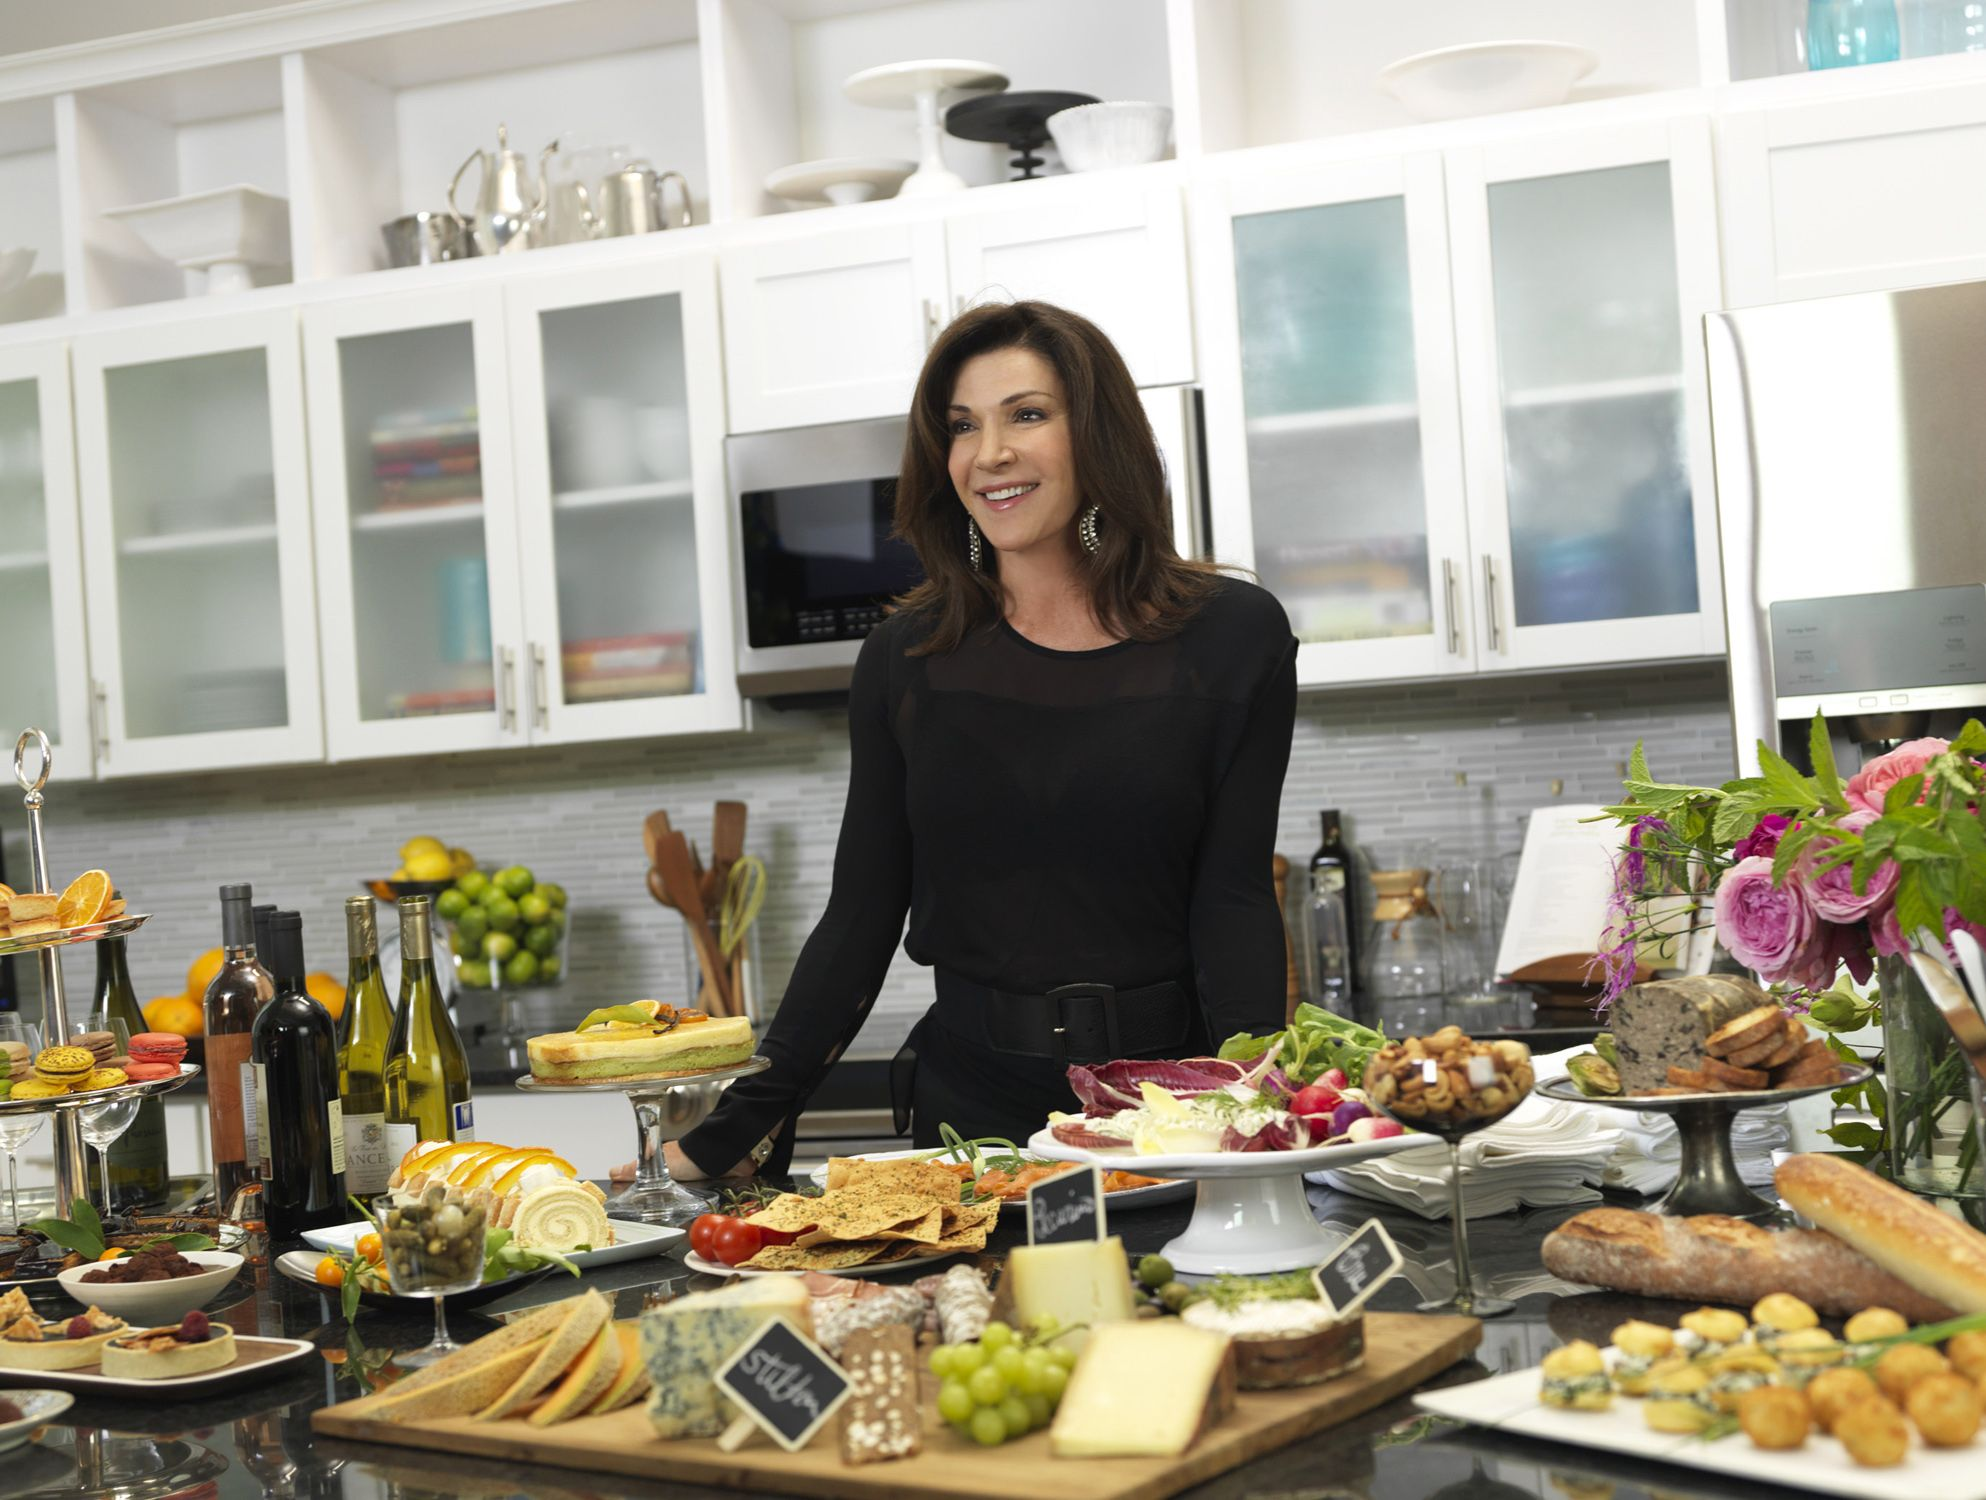 HGTV Star Hilary Farr Gives Advice On How To Host And Design A Kitchen. Part 63